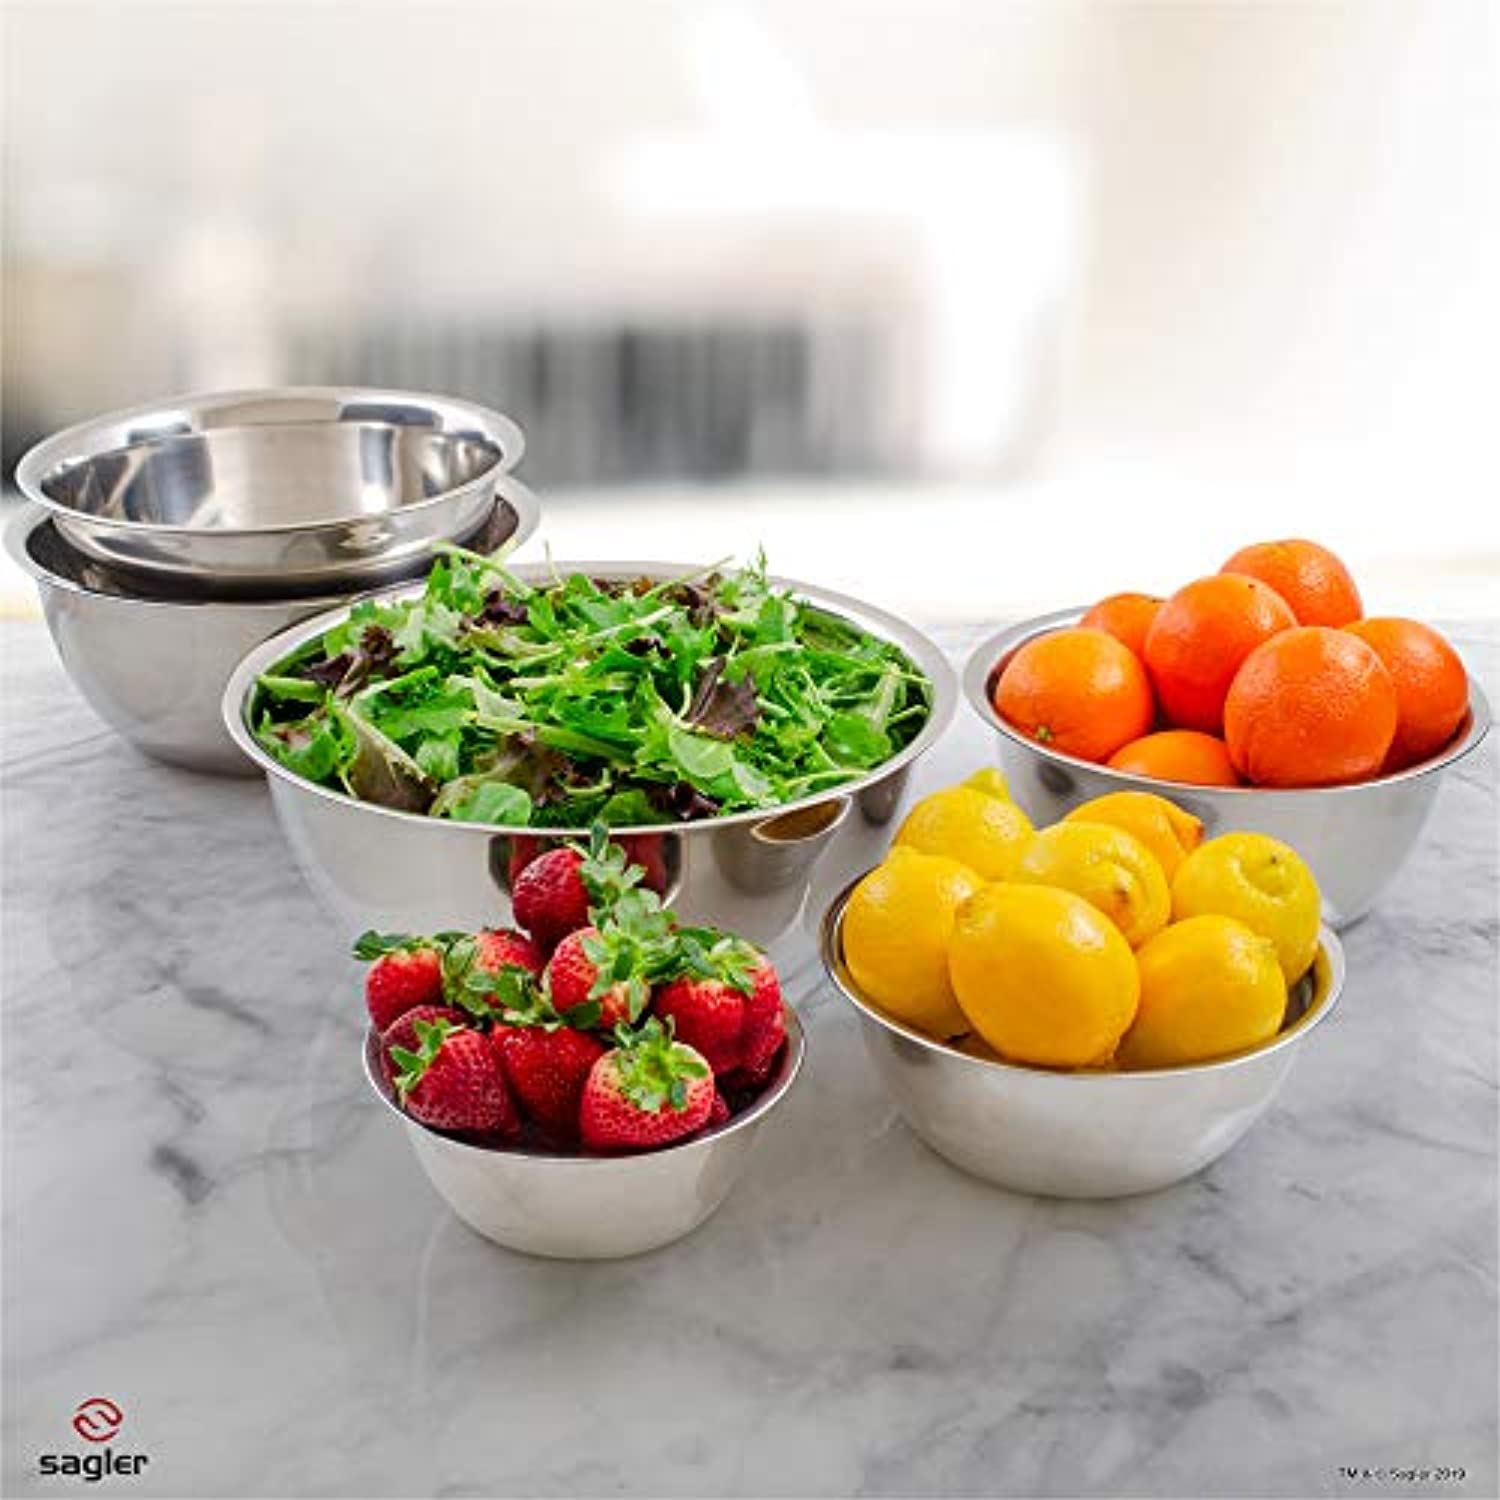 Classier: Buy Sagler mixing bowls - mixing bowl Set of 6 - stainless steel mixing bowls - Polished Mirror kitchen bowls - Set Includes ¾, 2, 3.5, 5, 6, 8 Quart - Ideal For Cooking & Serving - Easy to clean - Great gift